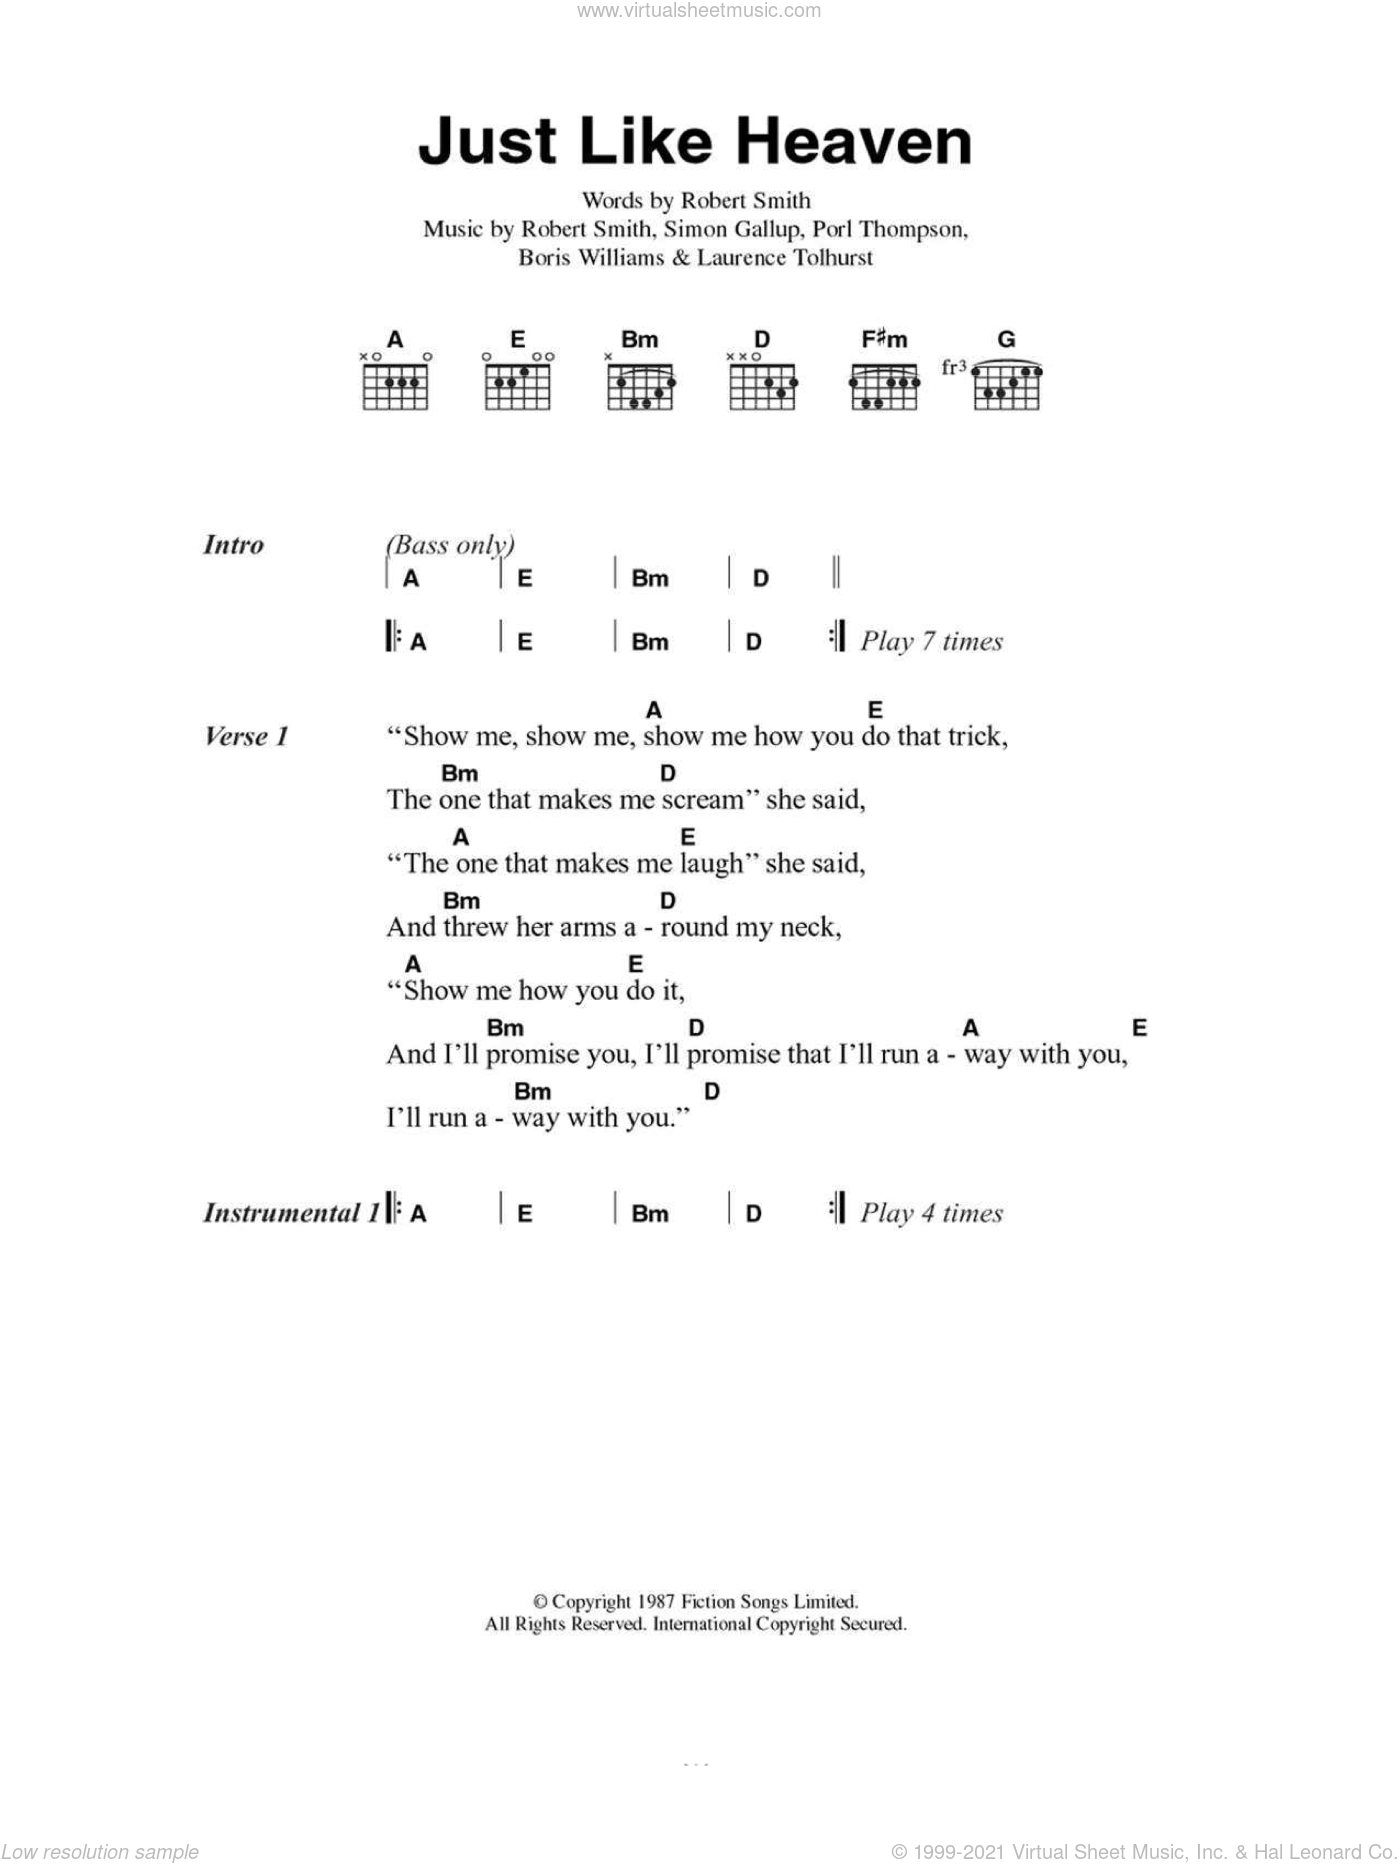 Just Like Heaven sheet music for guitar (chords) by The Cure. Score Image Preview.